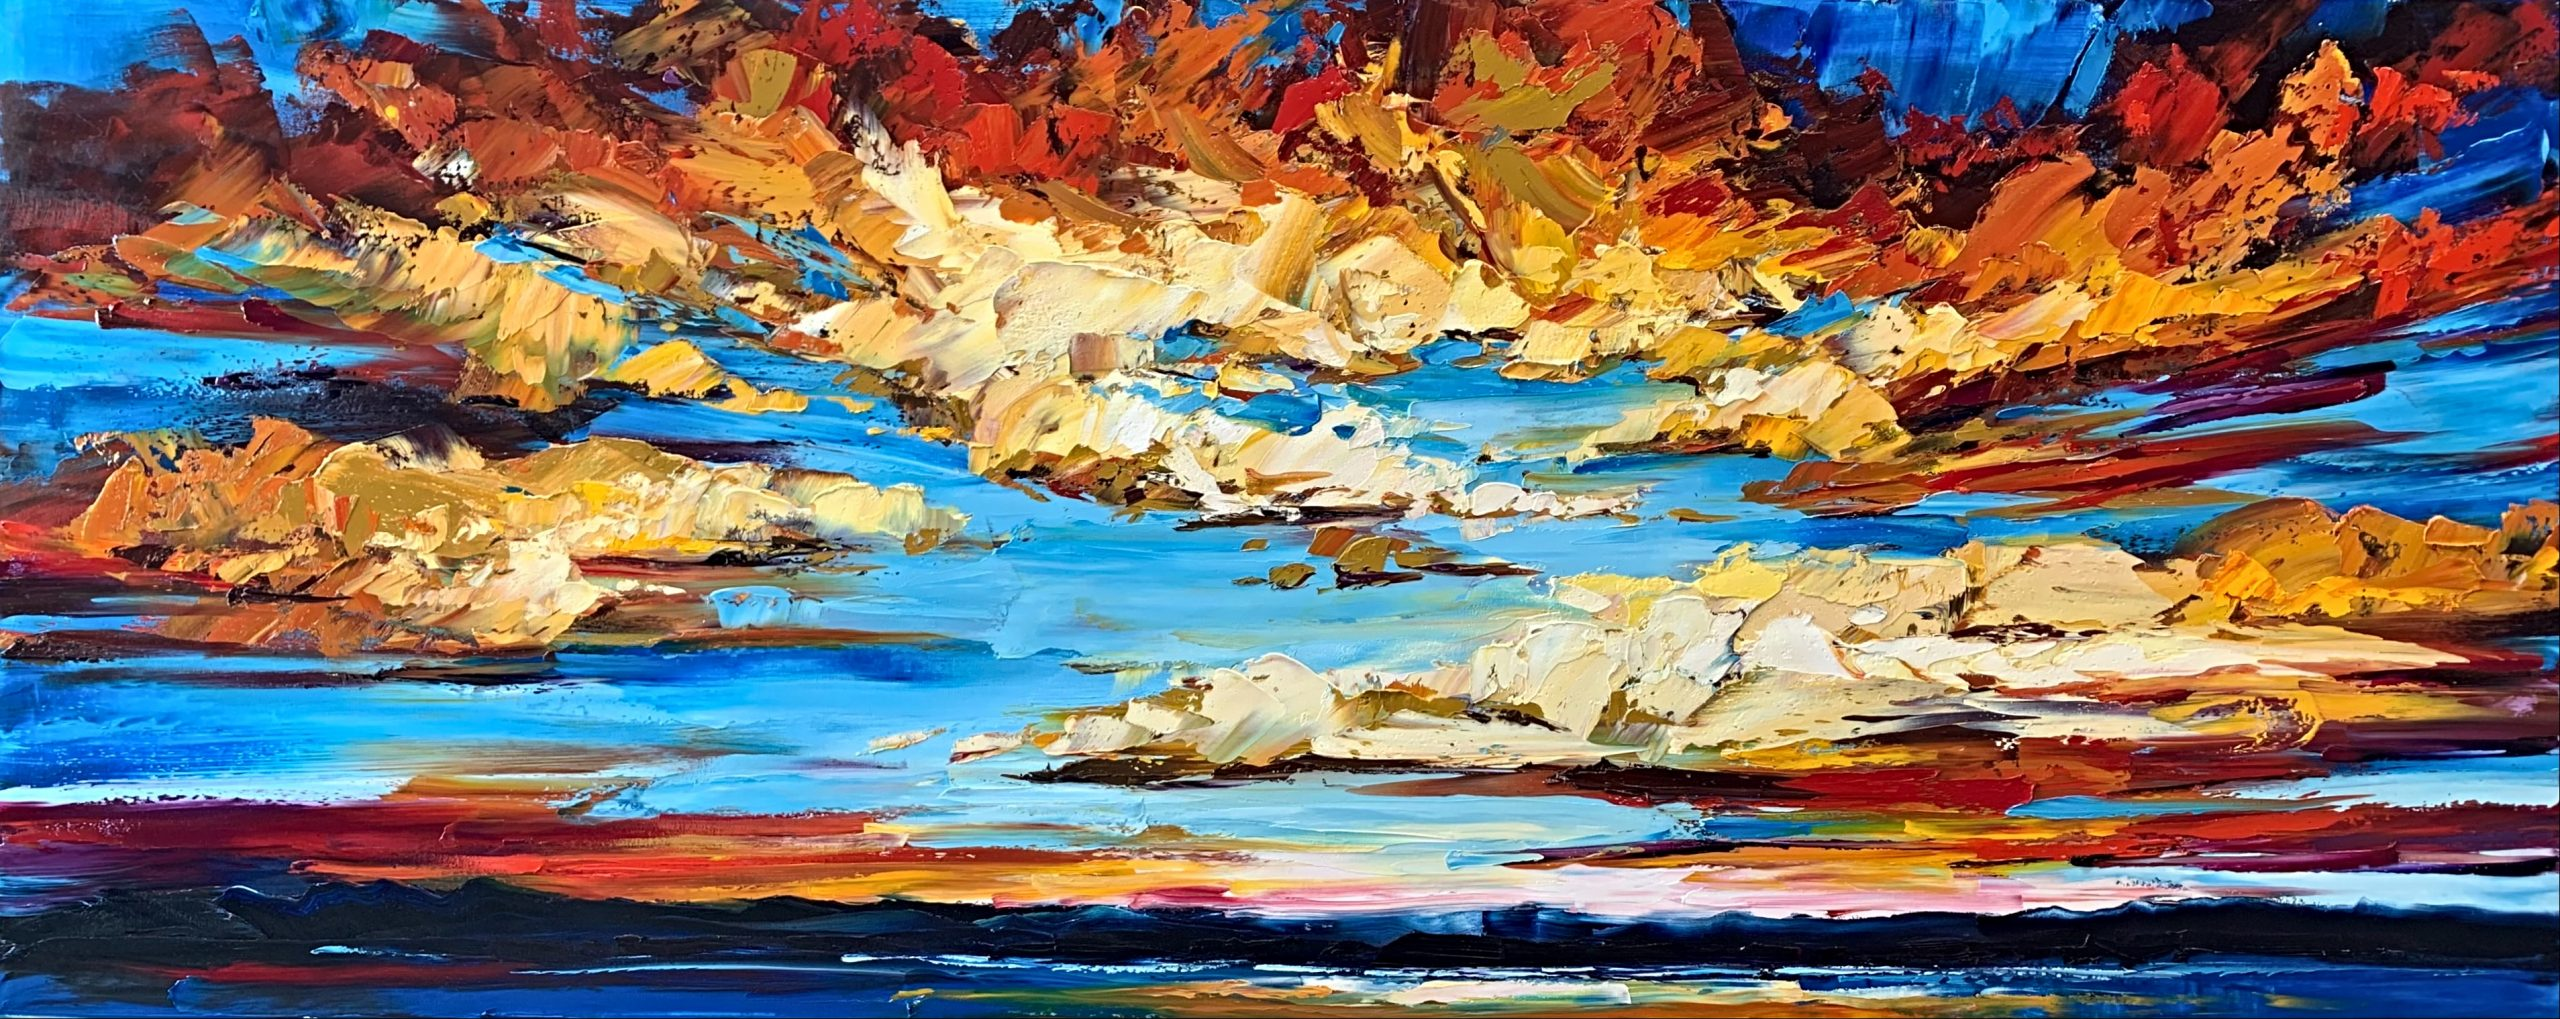 Halfway Home by Morning, sunset painting by Kimberly Kiel | Effusion Art Gallery + Cast Glass Studio, Invermere BC